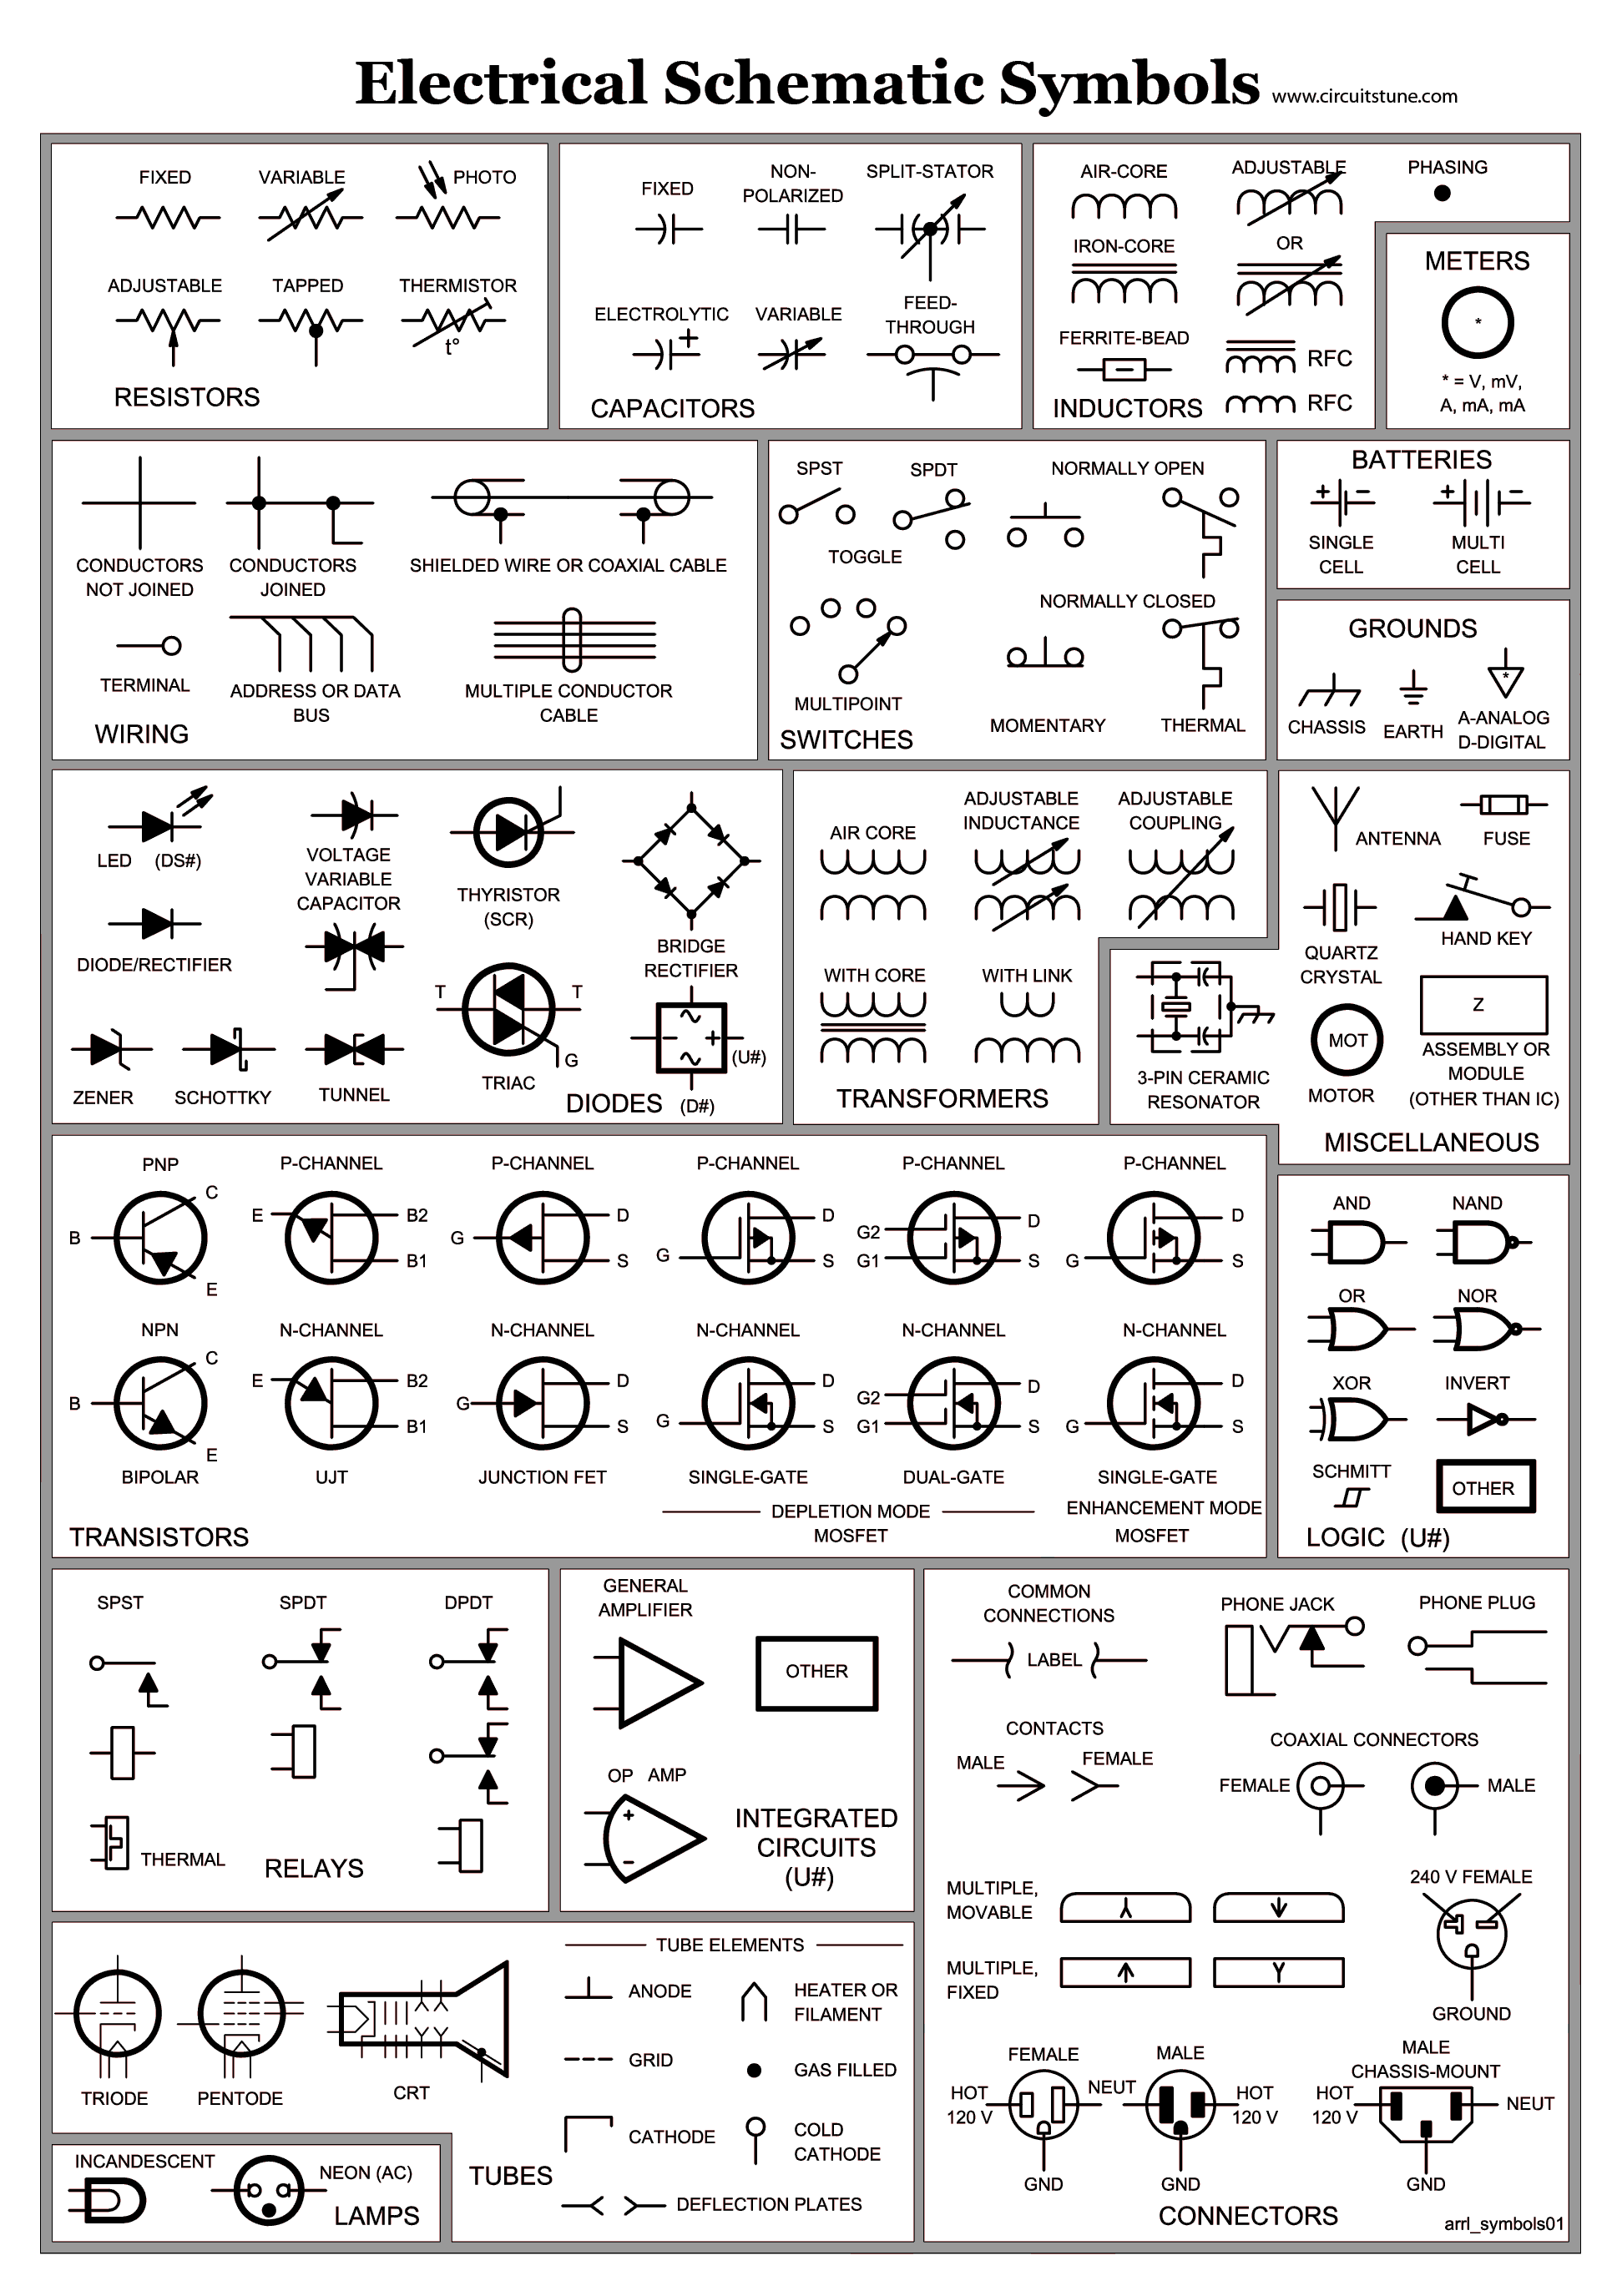 electrical schematic symbols | skinsquiggles | electrical ... old auto electrical wiring diagram symbols #12